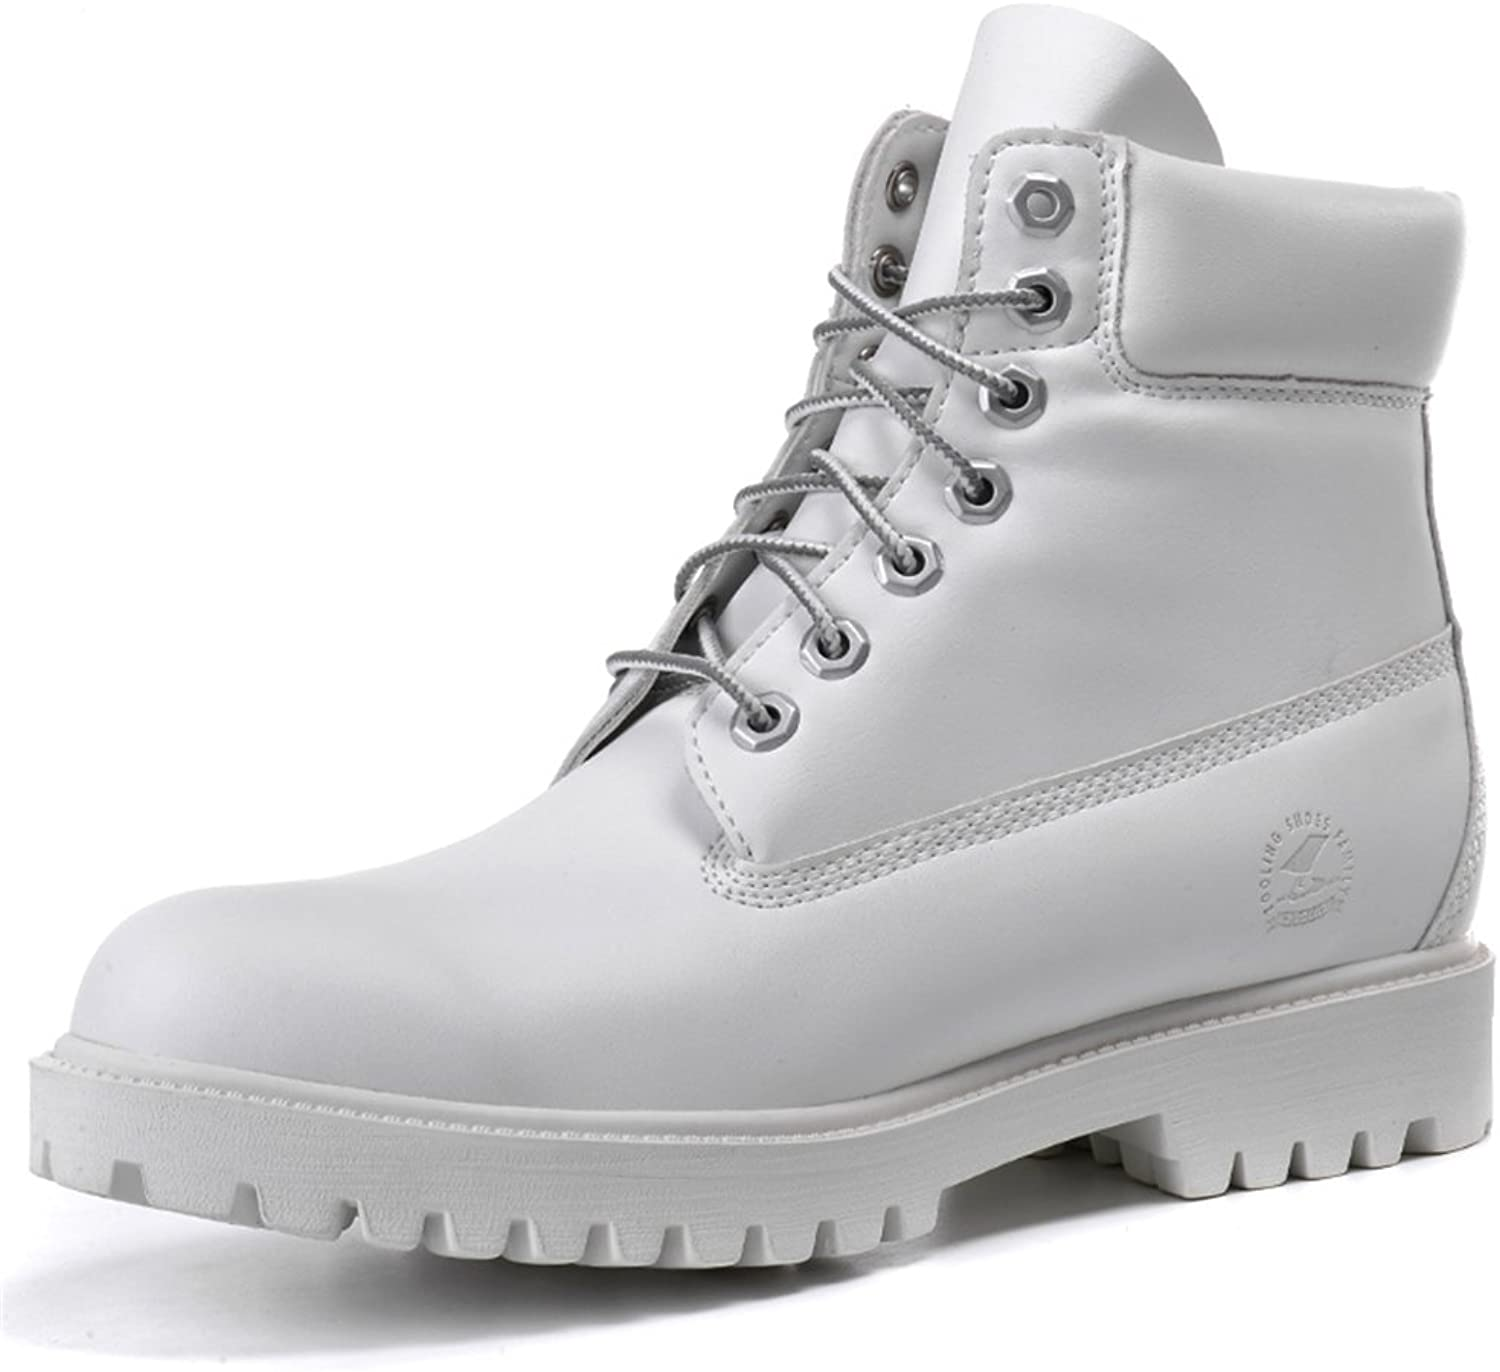 Choolike Fashion Men's shoes, Winter Martin Boots, Lining Material Add Villus, Warm and Comfortable